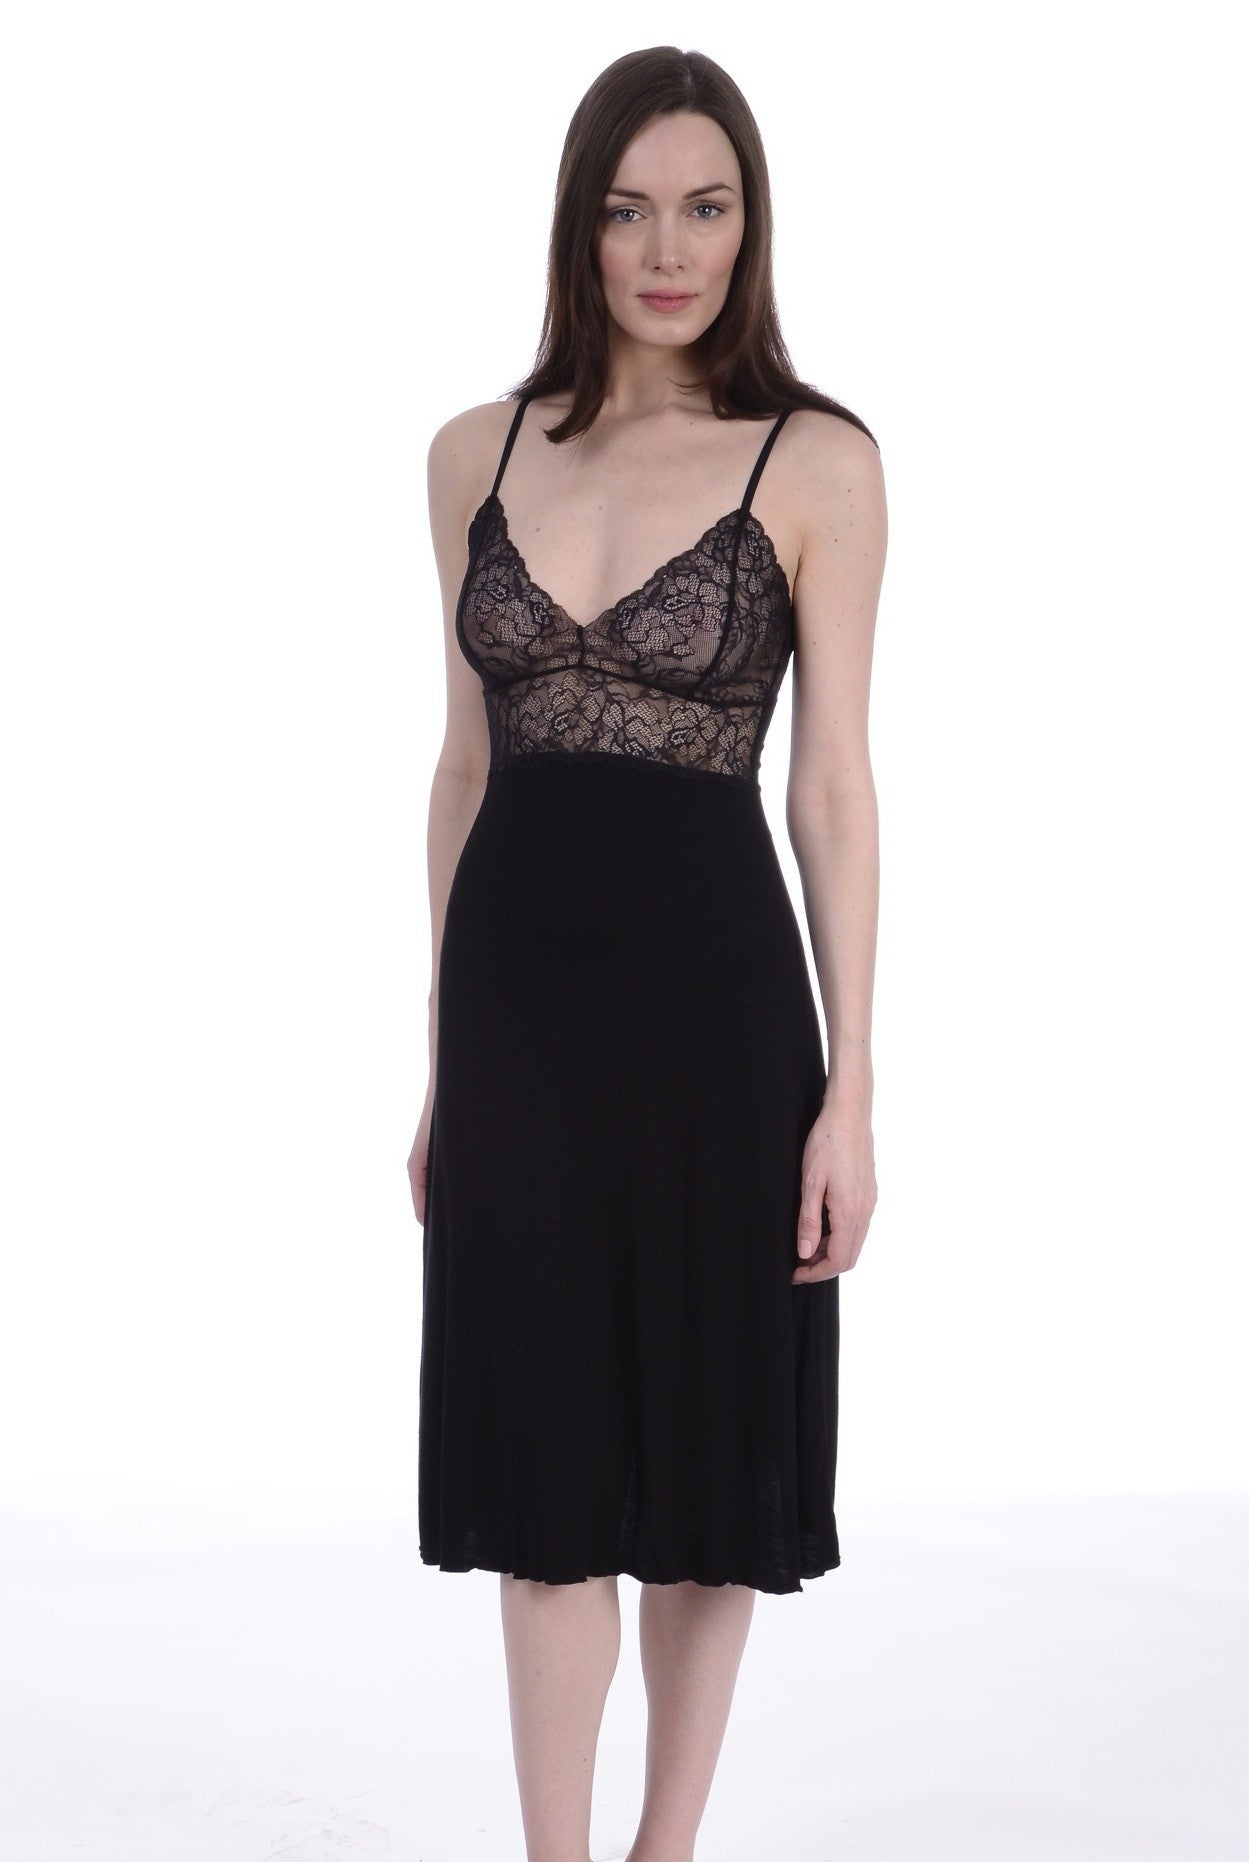 Samantha Chang Lace Cup Ballerina Gown - Knickers & Pearls Boutique